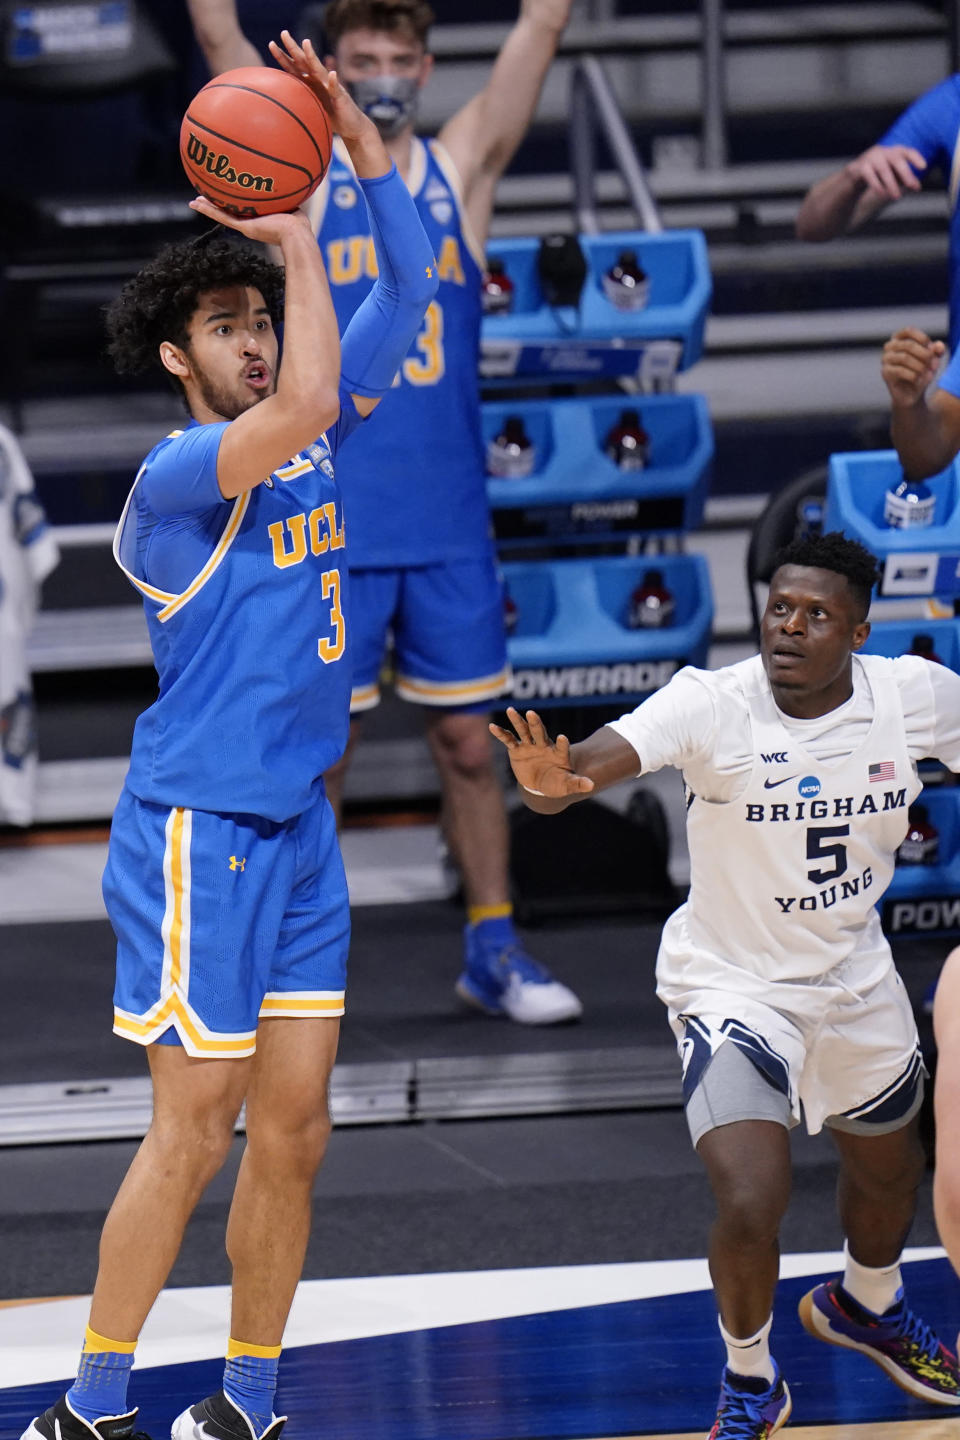 UCLA guard Johnny Juzang (3) takes a three point shot as BYU forward Gideon George (5) defends during the second half of a first-round game in the NCAA college basketball tournament at Hinkle Fieldhouse in Indianapolis, Saturday, March 20, 2021. (AP Photo/AJ Mast)